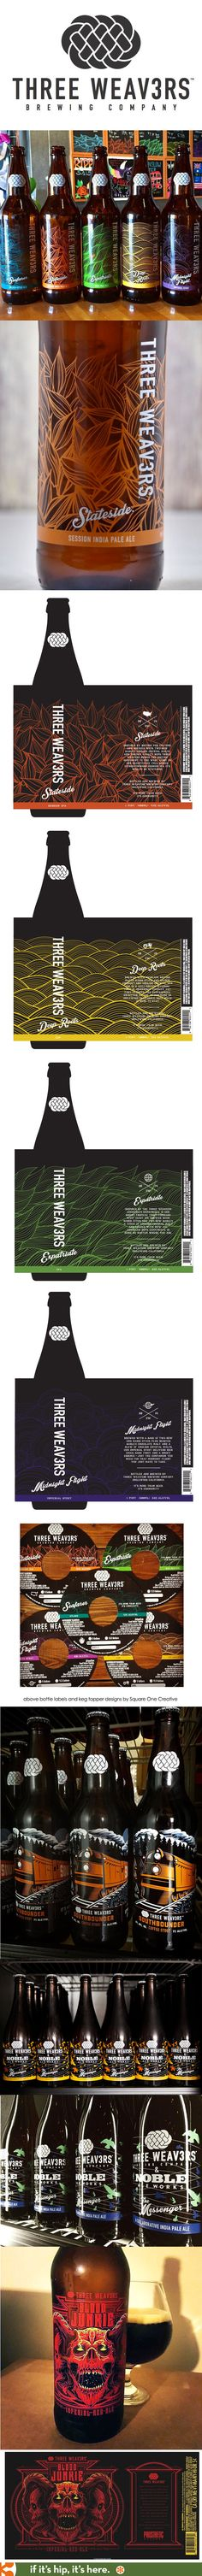 Silkscreened Bottles and labels for the Three Weavers Brewing Company Craft Beer.